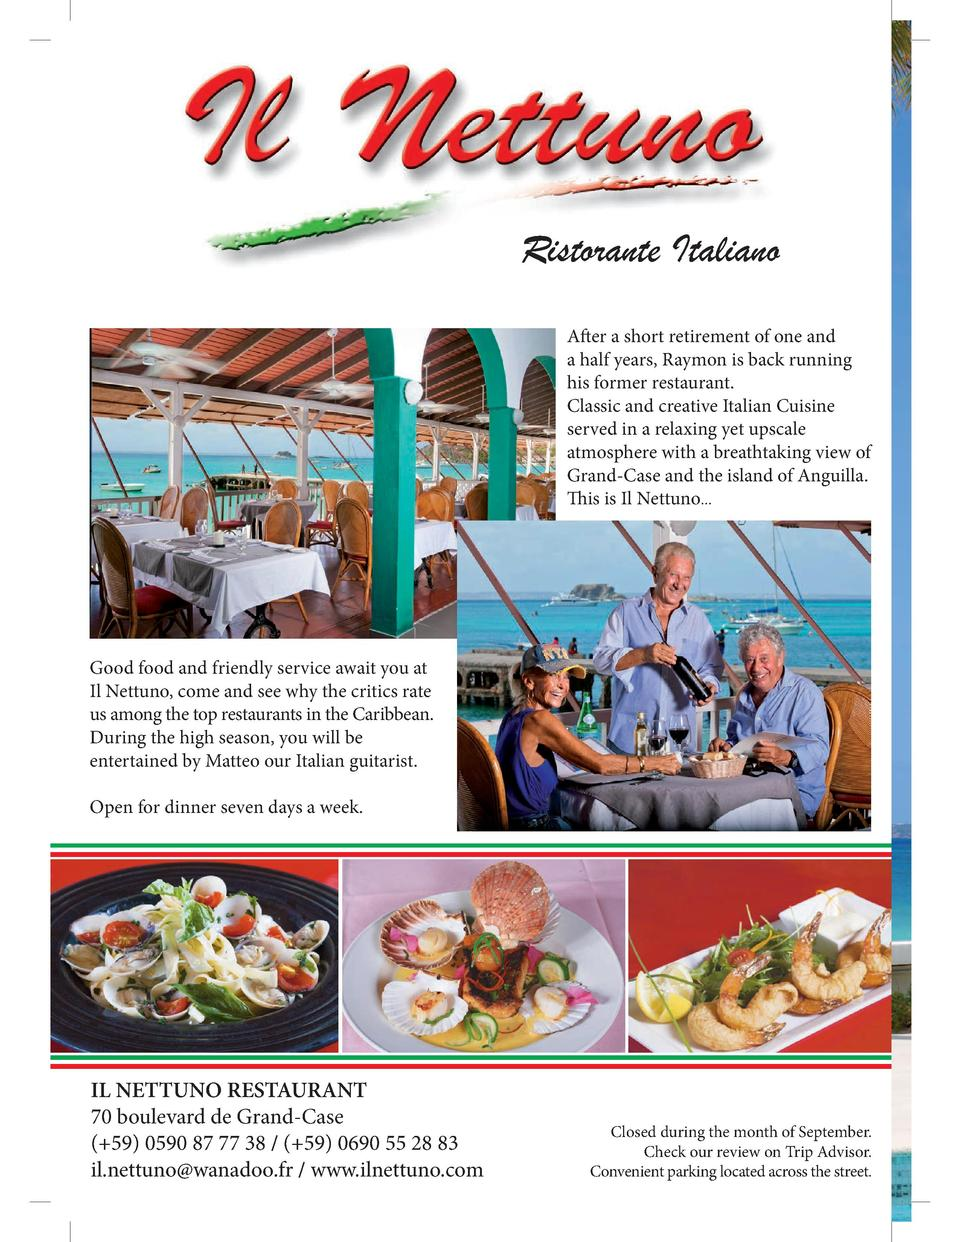 Ristorante Italiano After a short retirement of one and a half years, Raymon is back running his former restaurant. Classi...